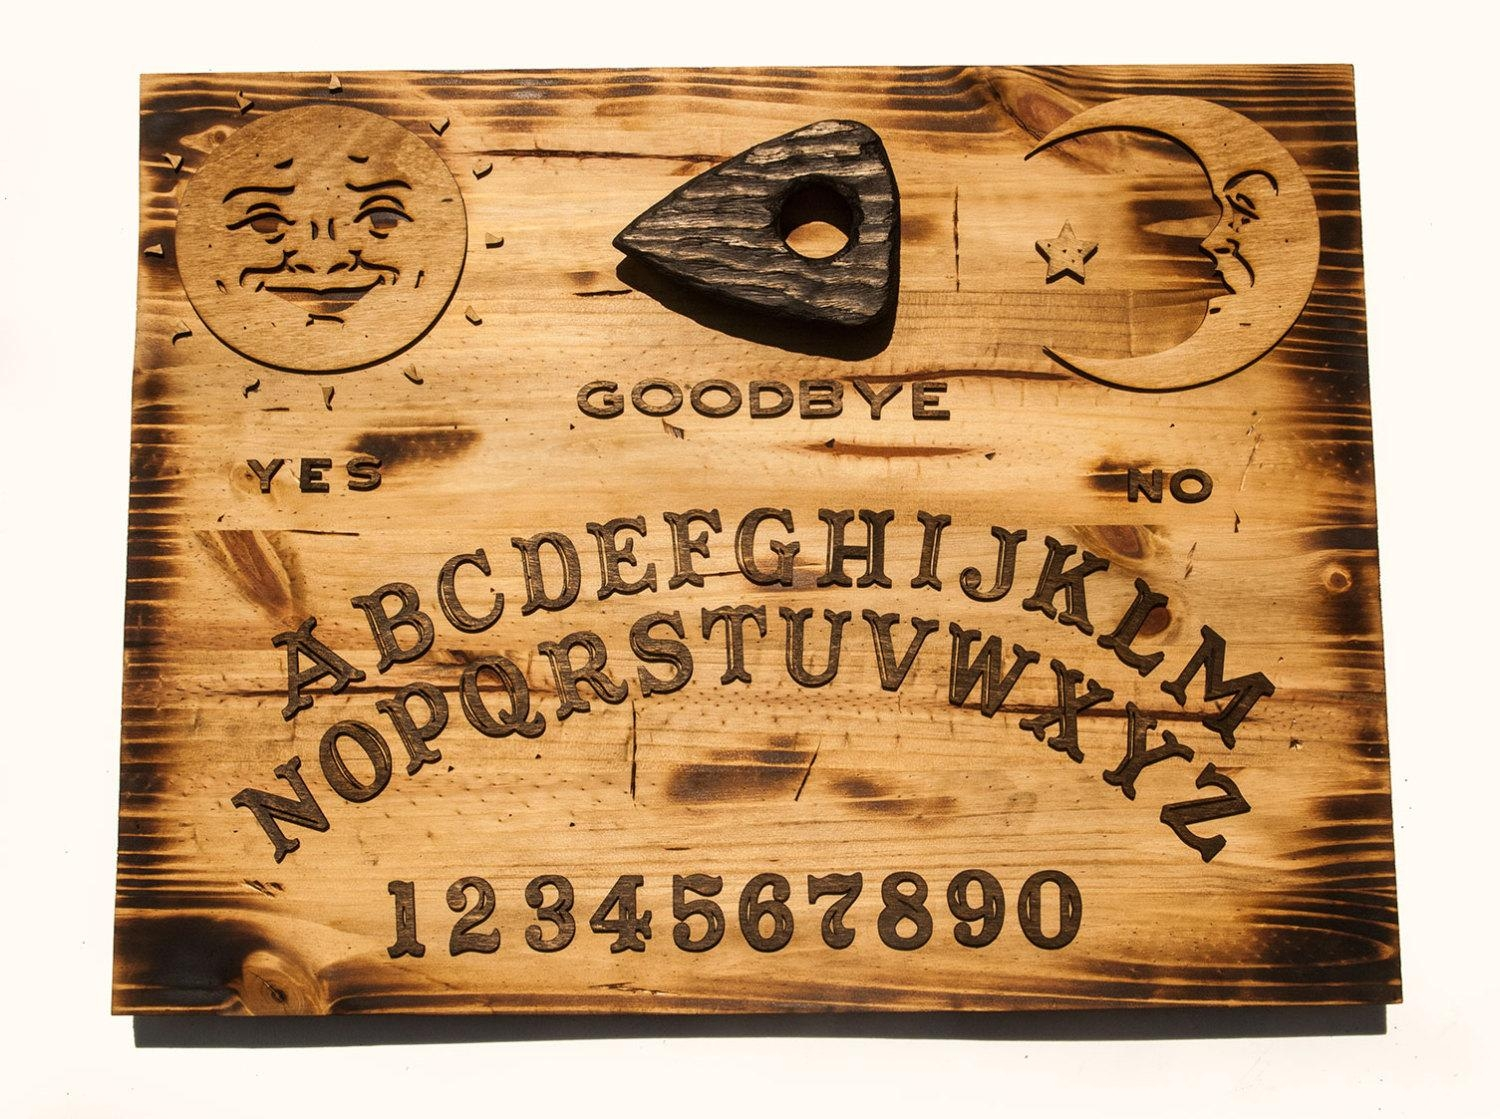 3D Sculptured Wall Hanging Wooden Ouija Board Art., Rustic, Sepia pertaining to Ouija Board Wall Art